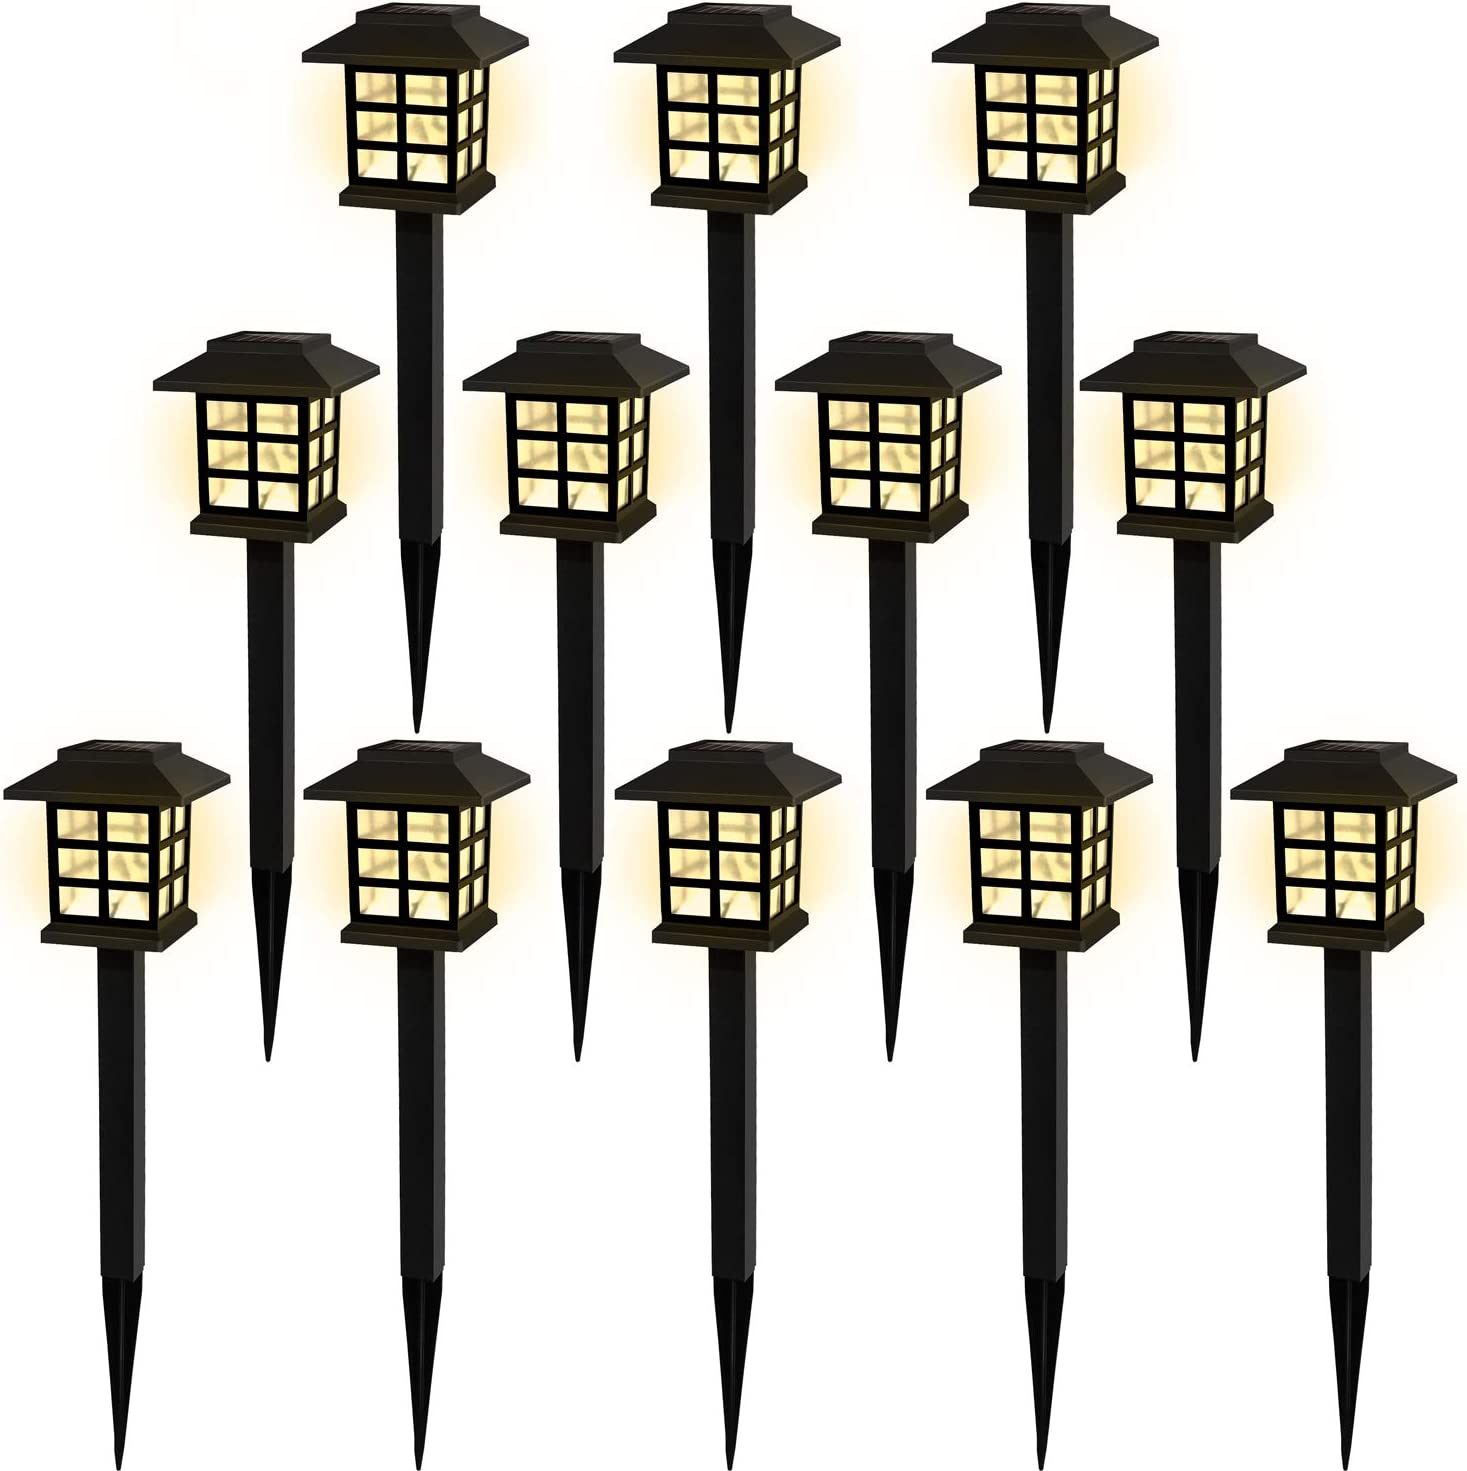 Solar Pathway Lights Outdoor Garden Lights Solar Powered Led Lawn Landscape Decoration Waterproof for Walkway Yard Driveway Backyard White Light Warm White 12 Pack